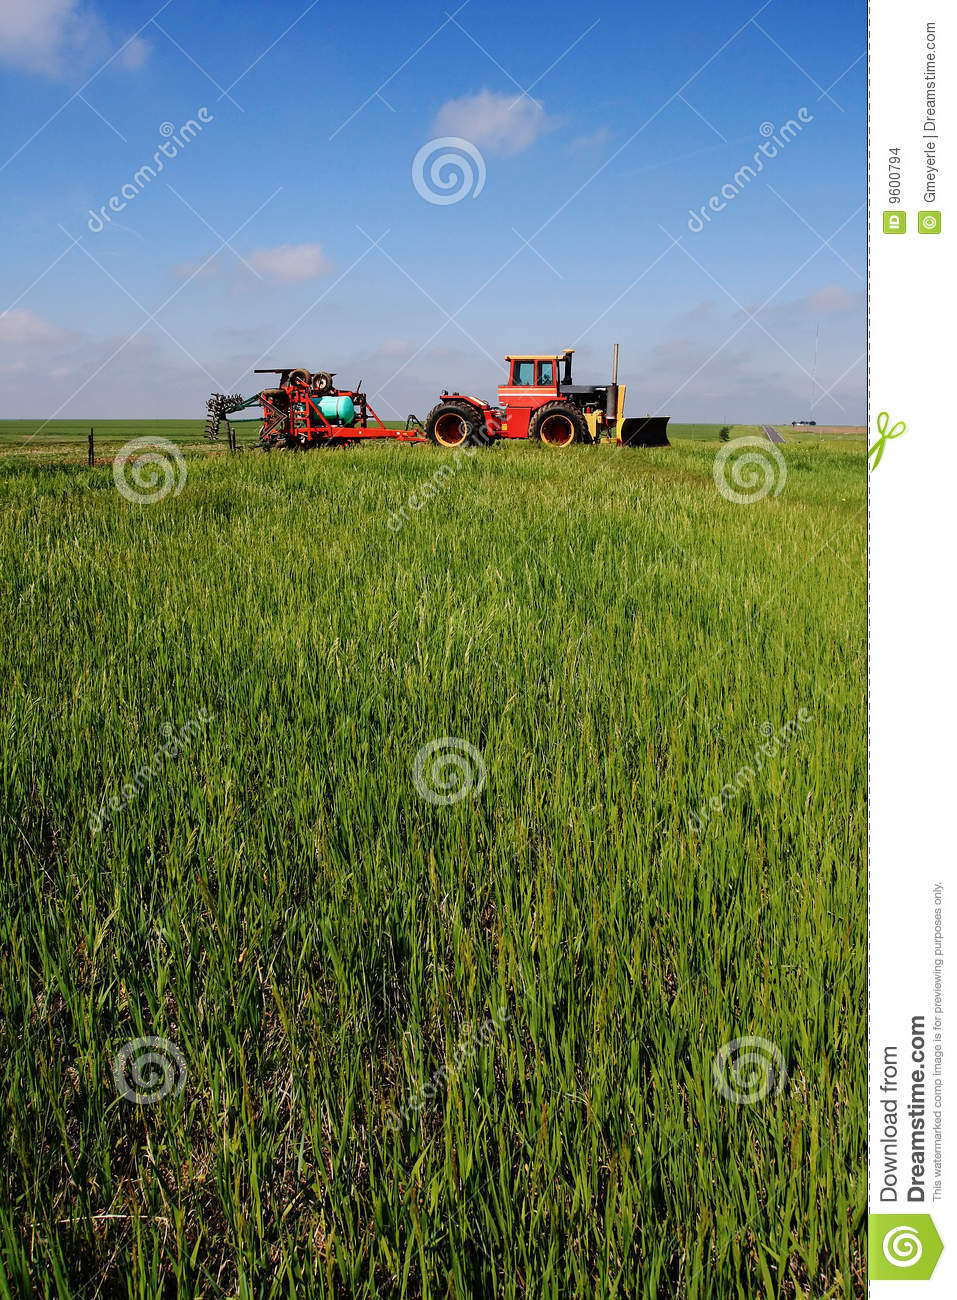 Tractor and Fertilizer